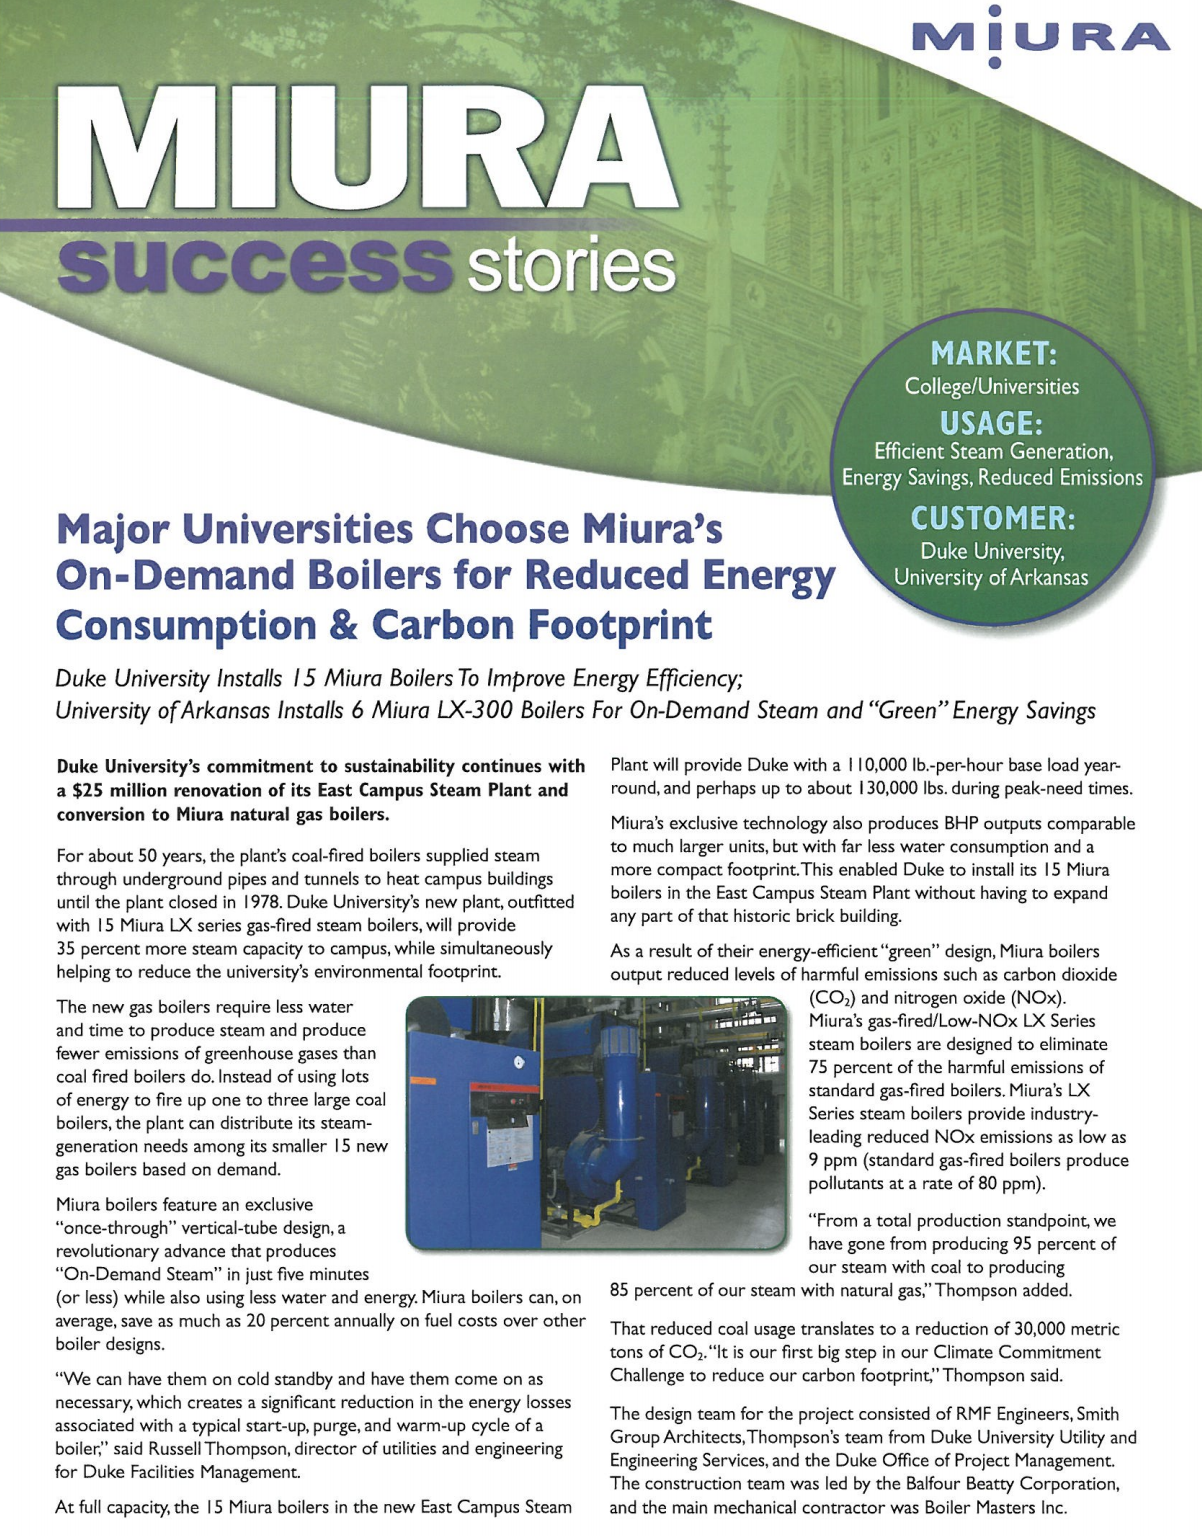 Duke University Reduces Carbon Footprint and Saves Energy with Miura Boilers